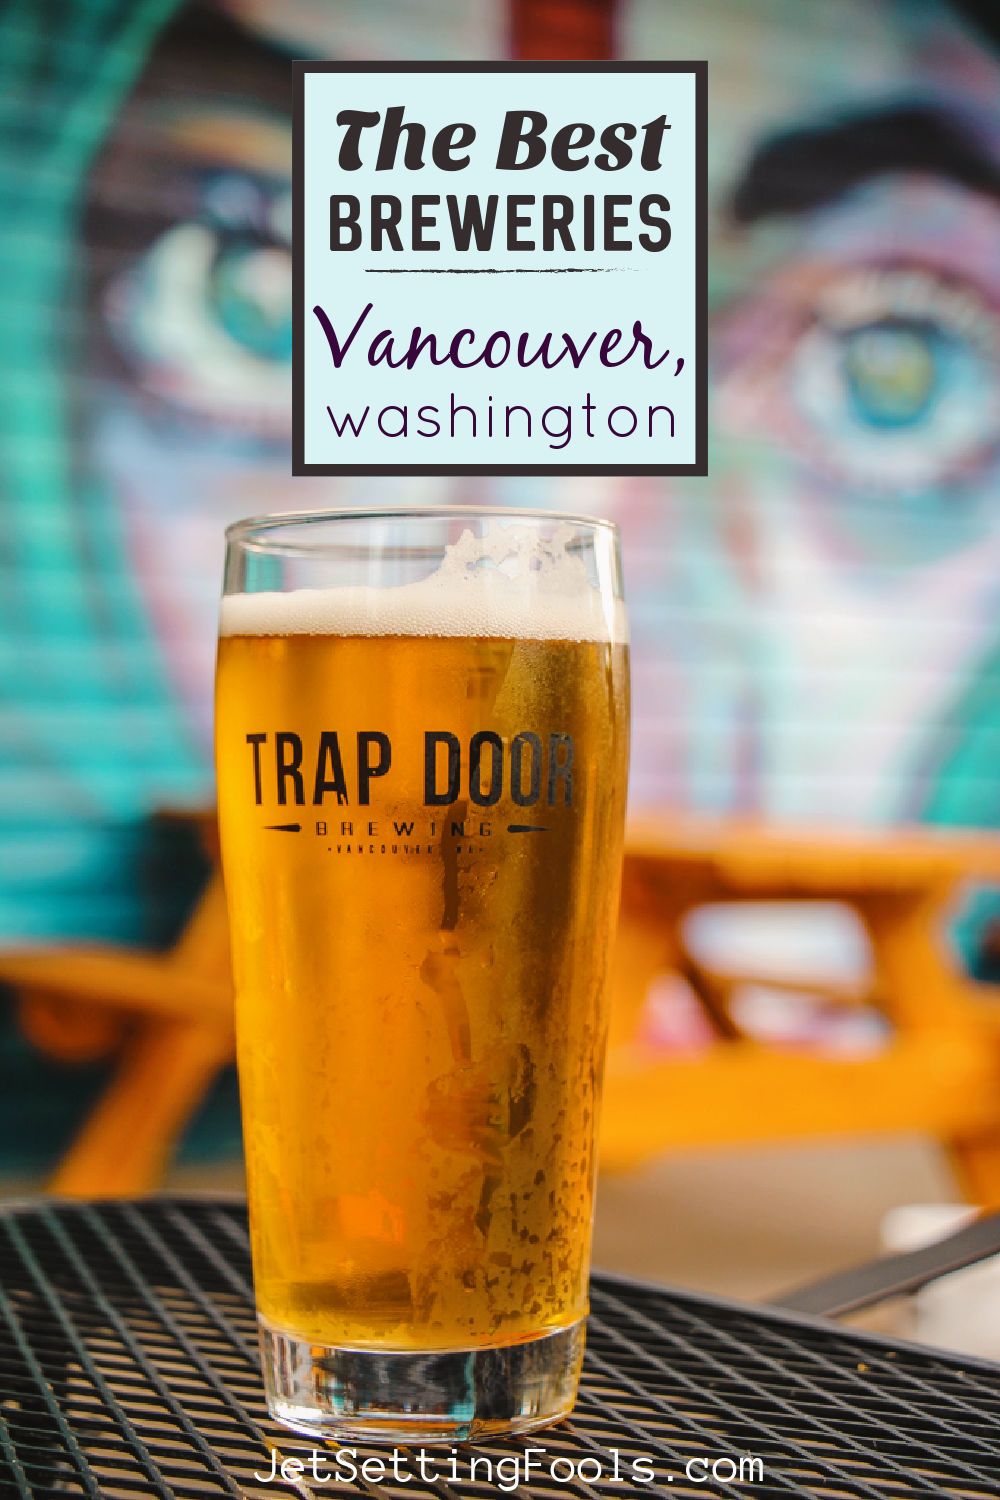 The Best Breweries Vancouver, Washington by JetSettingFools.com